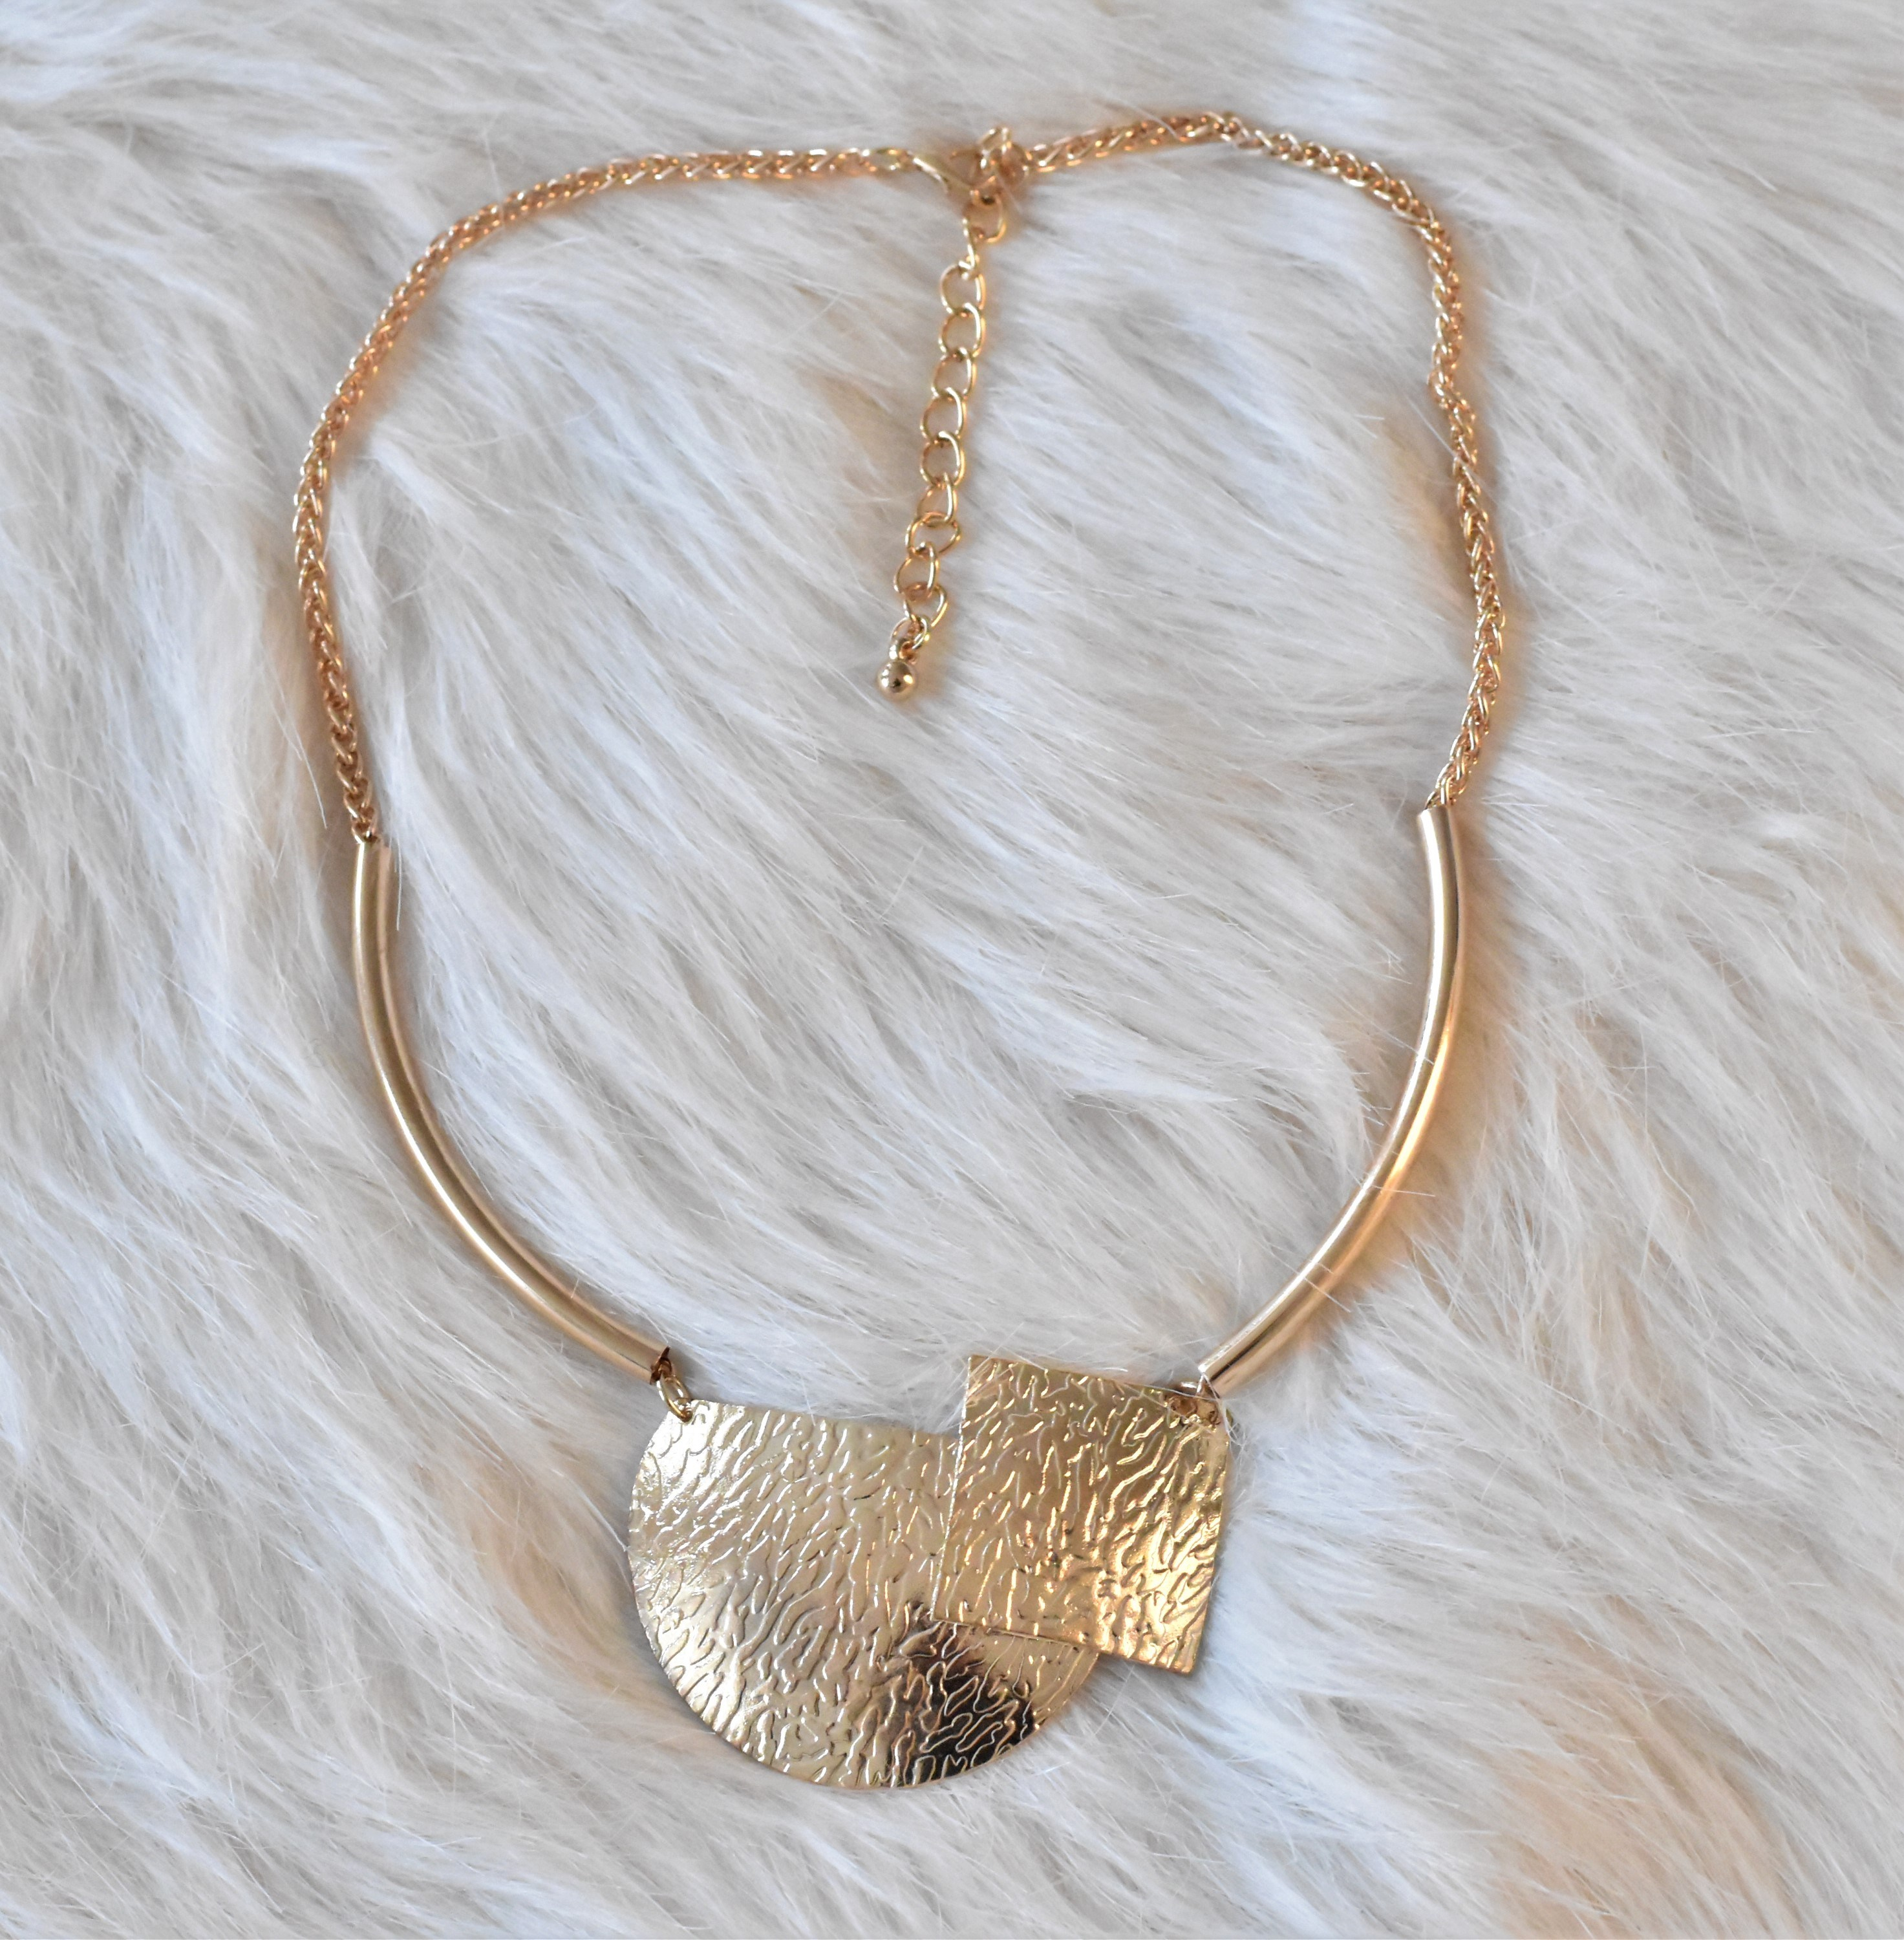 Circle and Cube Golden Necklace from Grab Your Garb